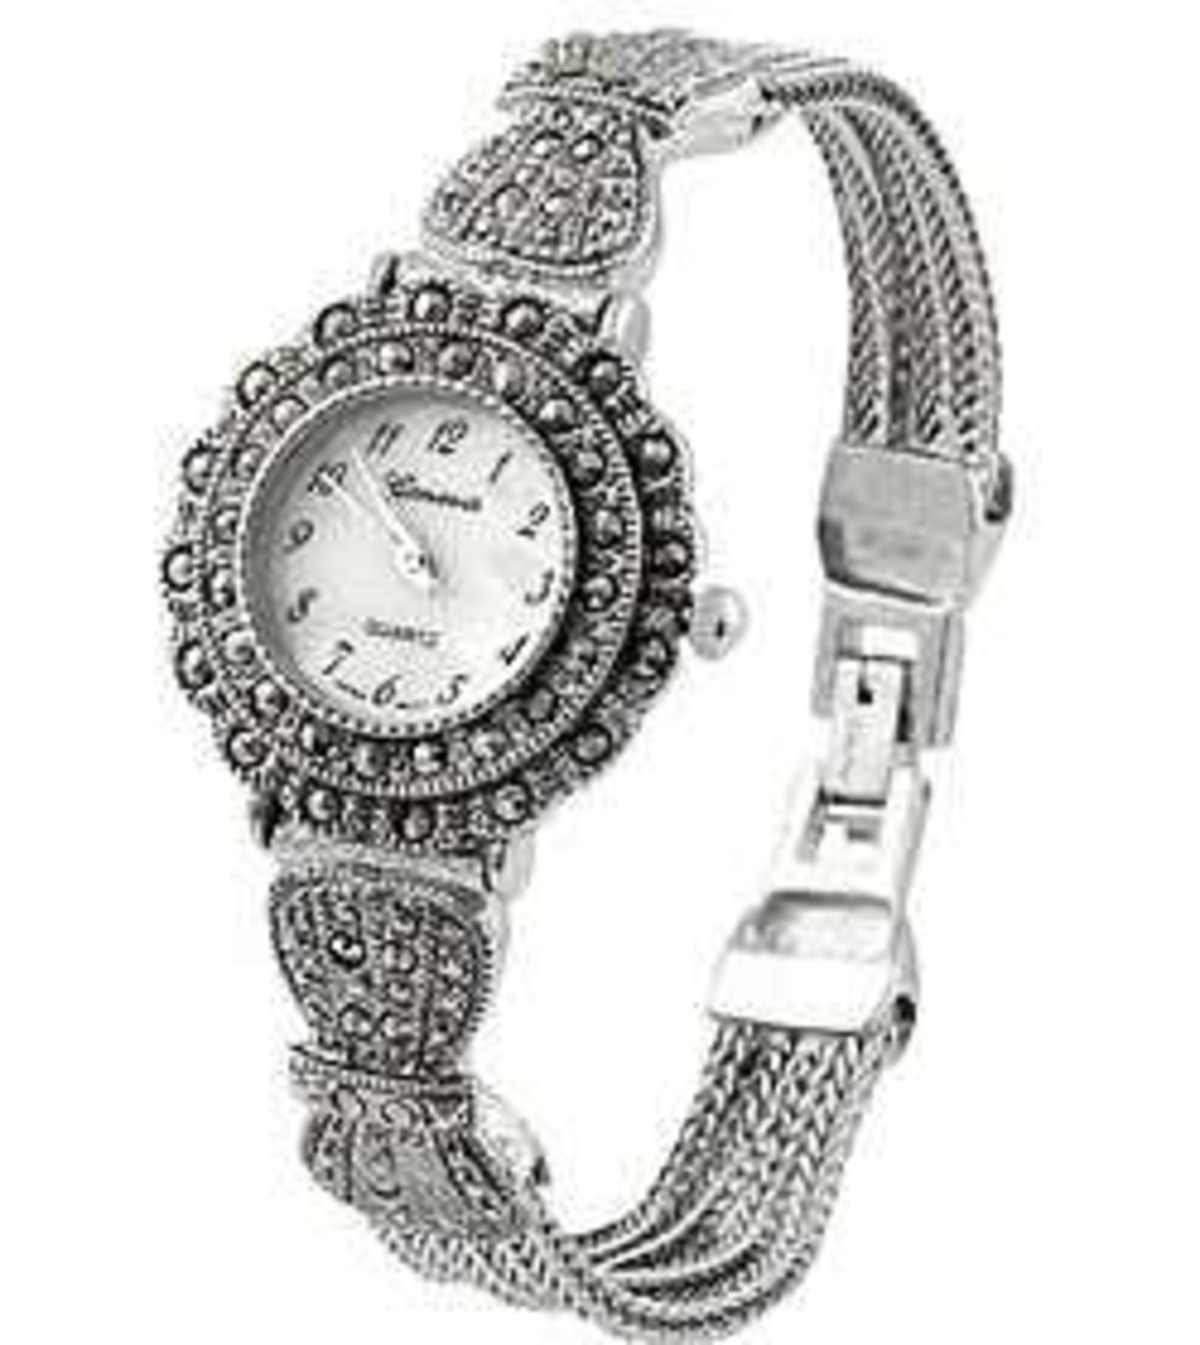 GENEVA WOMEN'S MARCASITE ANTIQUE WATCH: